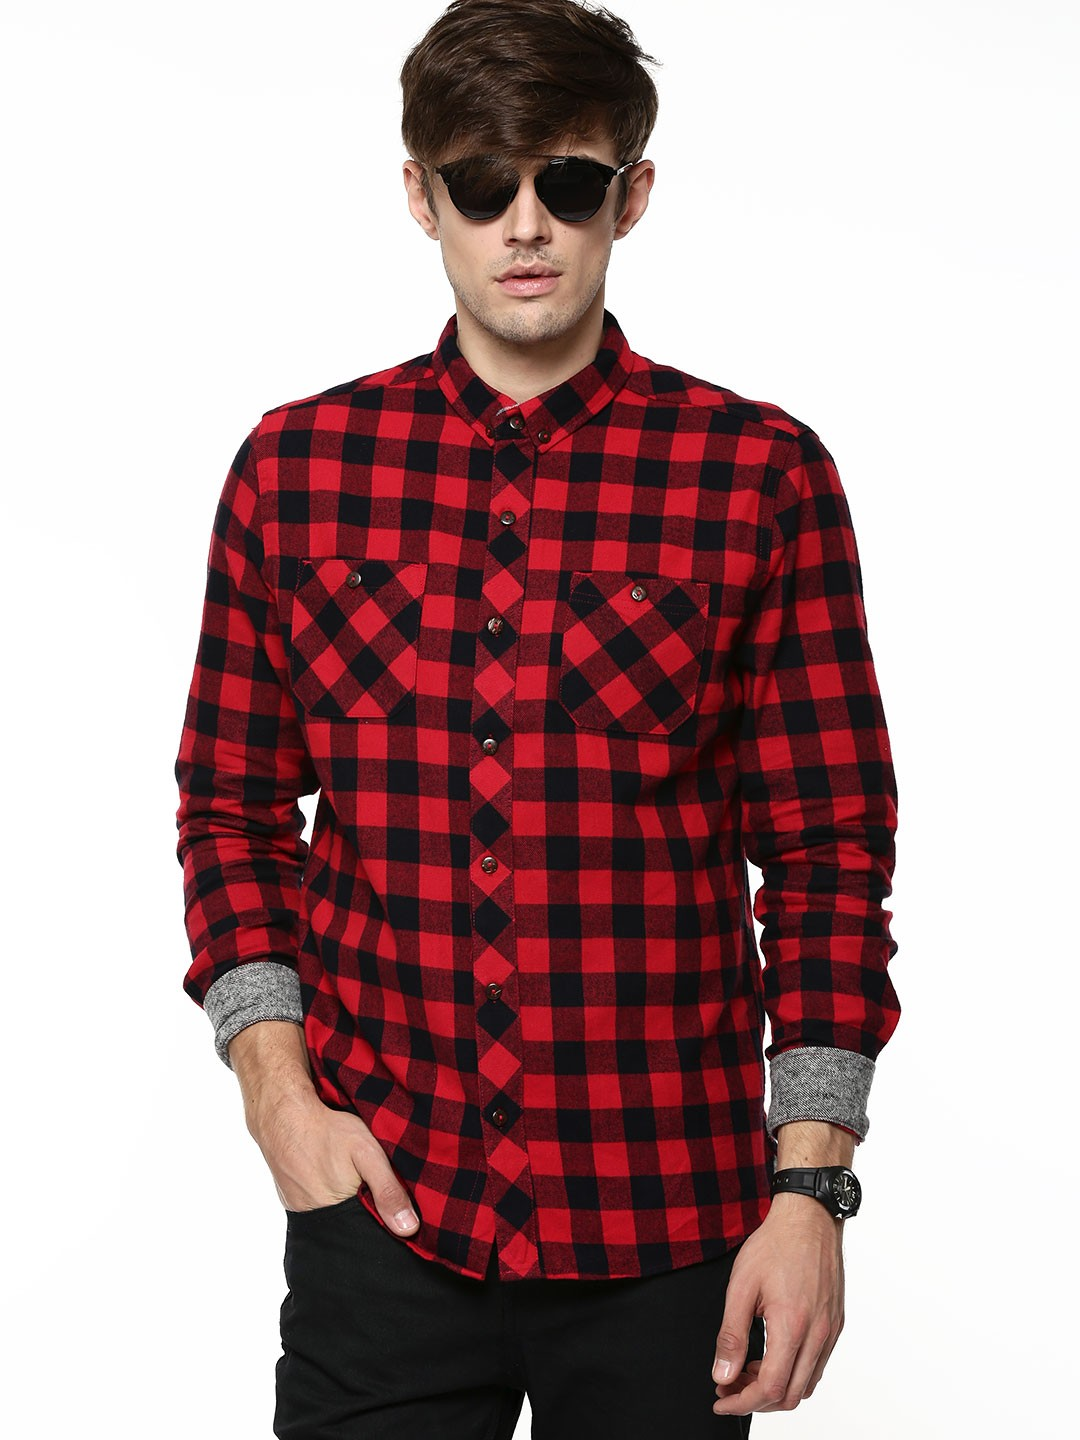 buy d struct mens buffalo check shirt for men men 39 s red